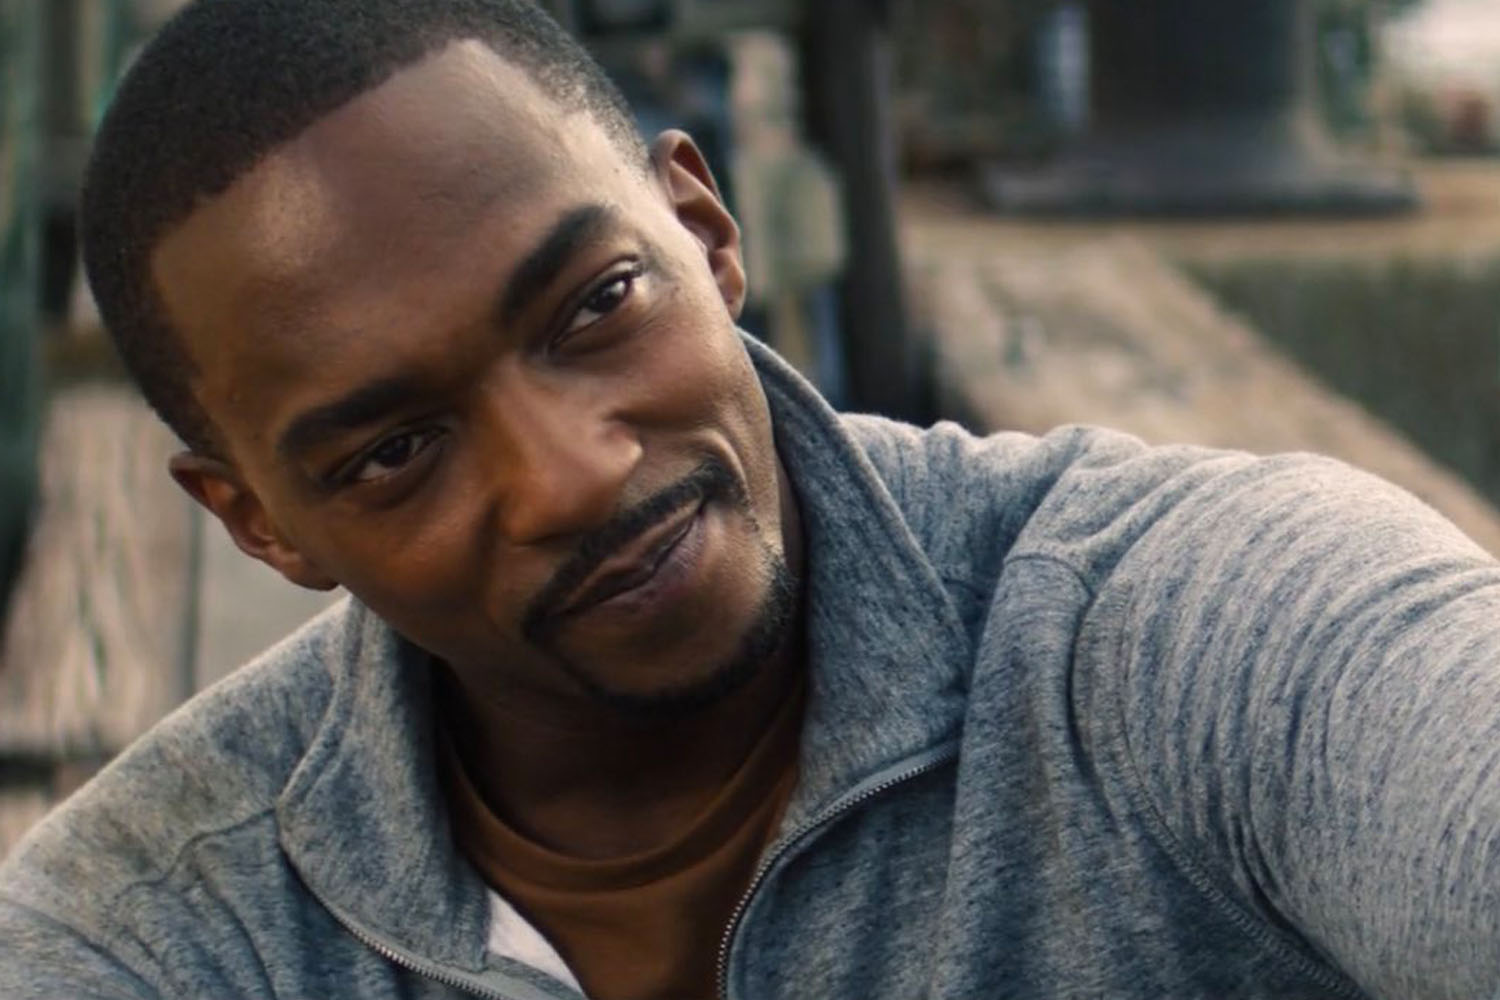 'The Falcon and the Winter Soldier' Episode 5 gives Sam Wilson his best scenes of the show